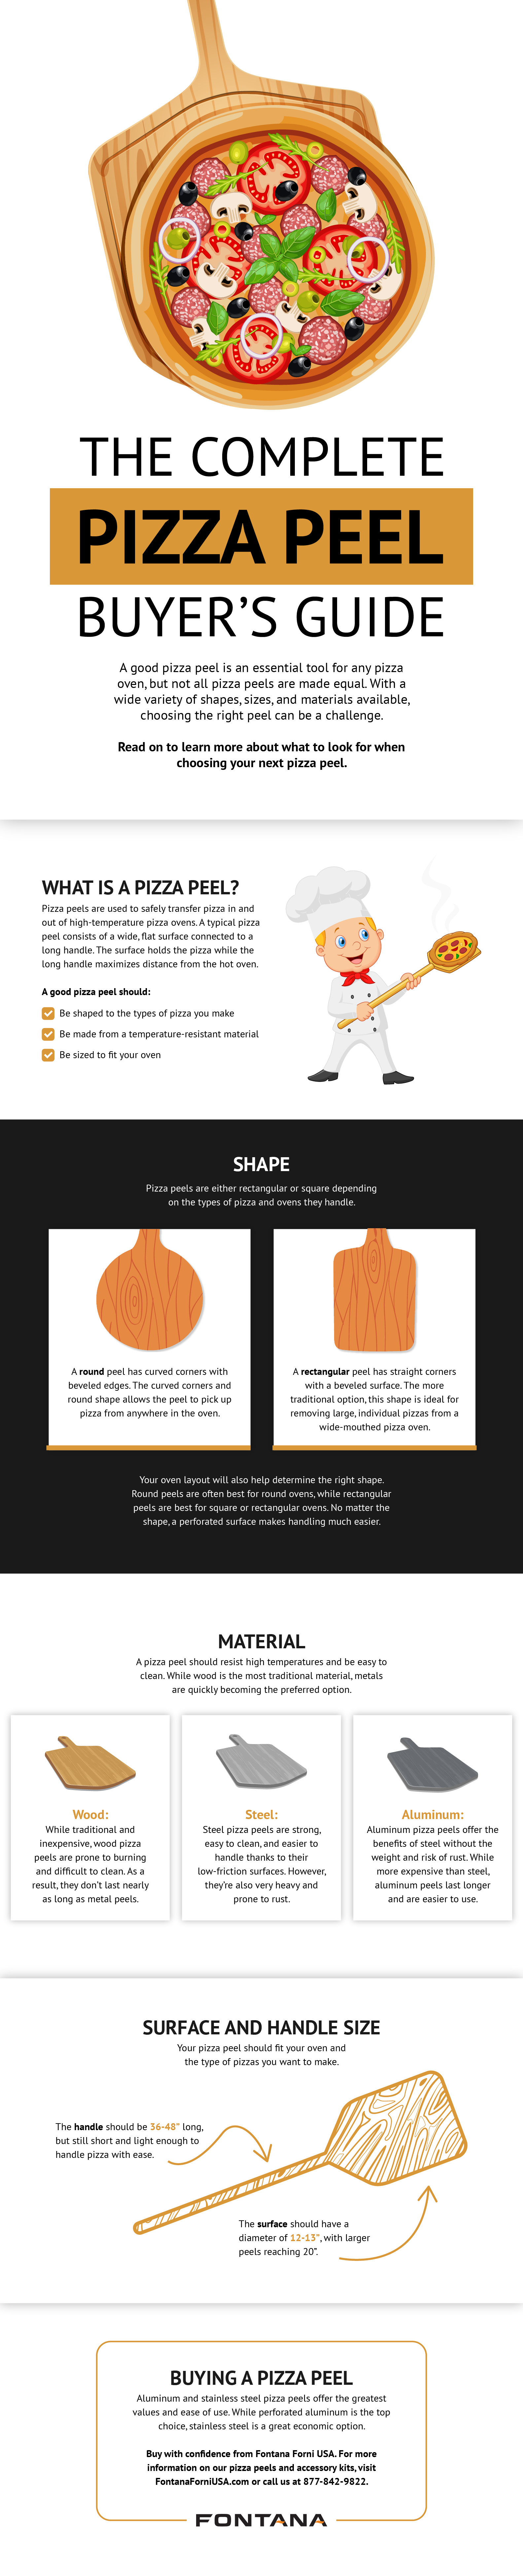 The Complete Pizza Peel Buyer's Guide Infographic